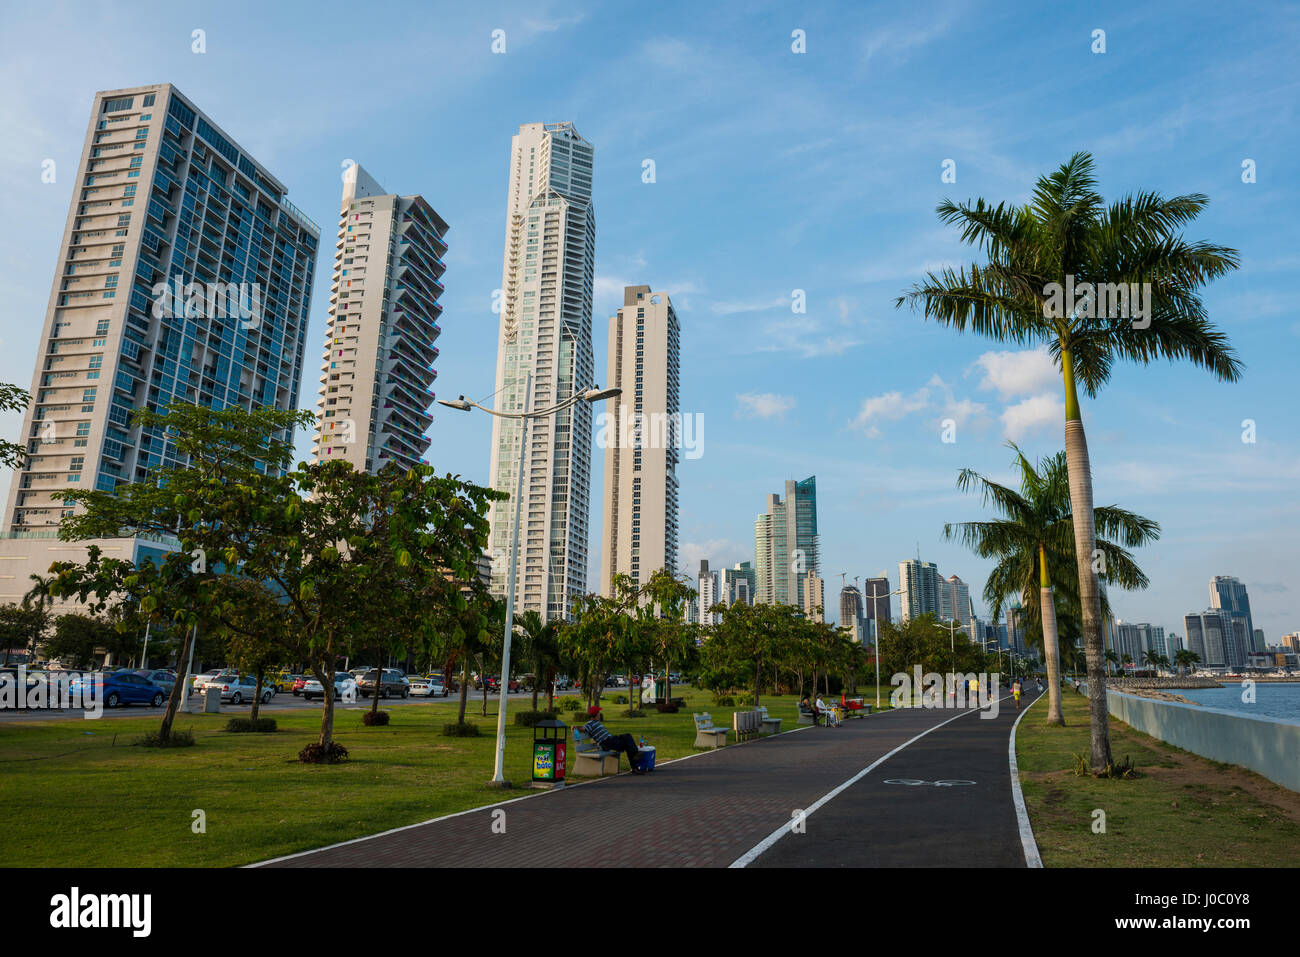 Walkway and the skyline of Panama City, Panama, Central America - Stock Image